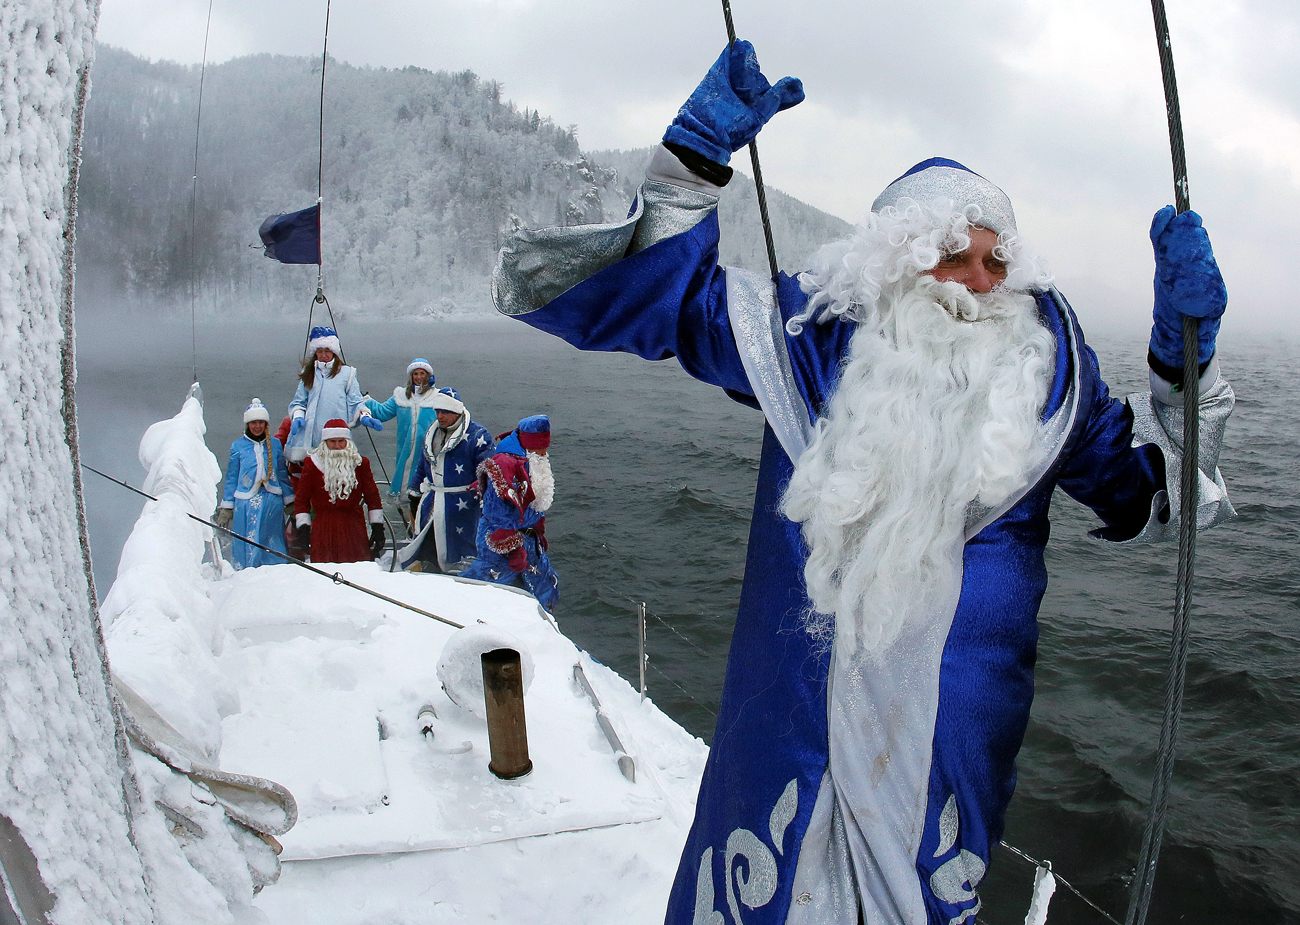 "Members of the ""Skipper"" yacht club dressed as Ded Moroz, the Russian equivalent of Santa Claus, and his granddaughter Snegurochka (Snow Maiden) sail a yacht along the Yenisei River while marking the end of the sailboat season, with the air temperature at about minus 21 degrees Celsius (minus 5.8 degrees Fahrenheit), outside the Siberian city of Krasnoyarsk, Russia"